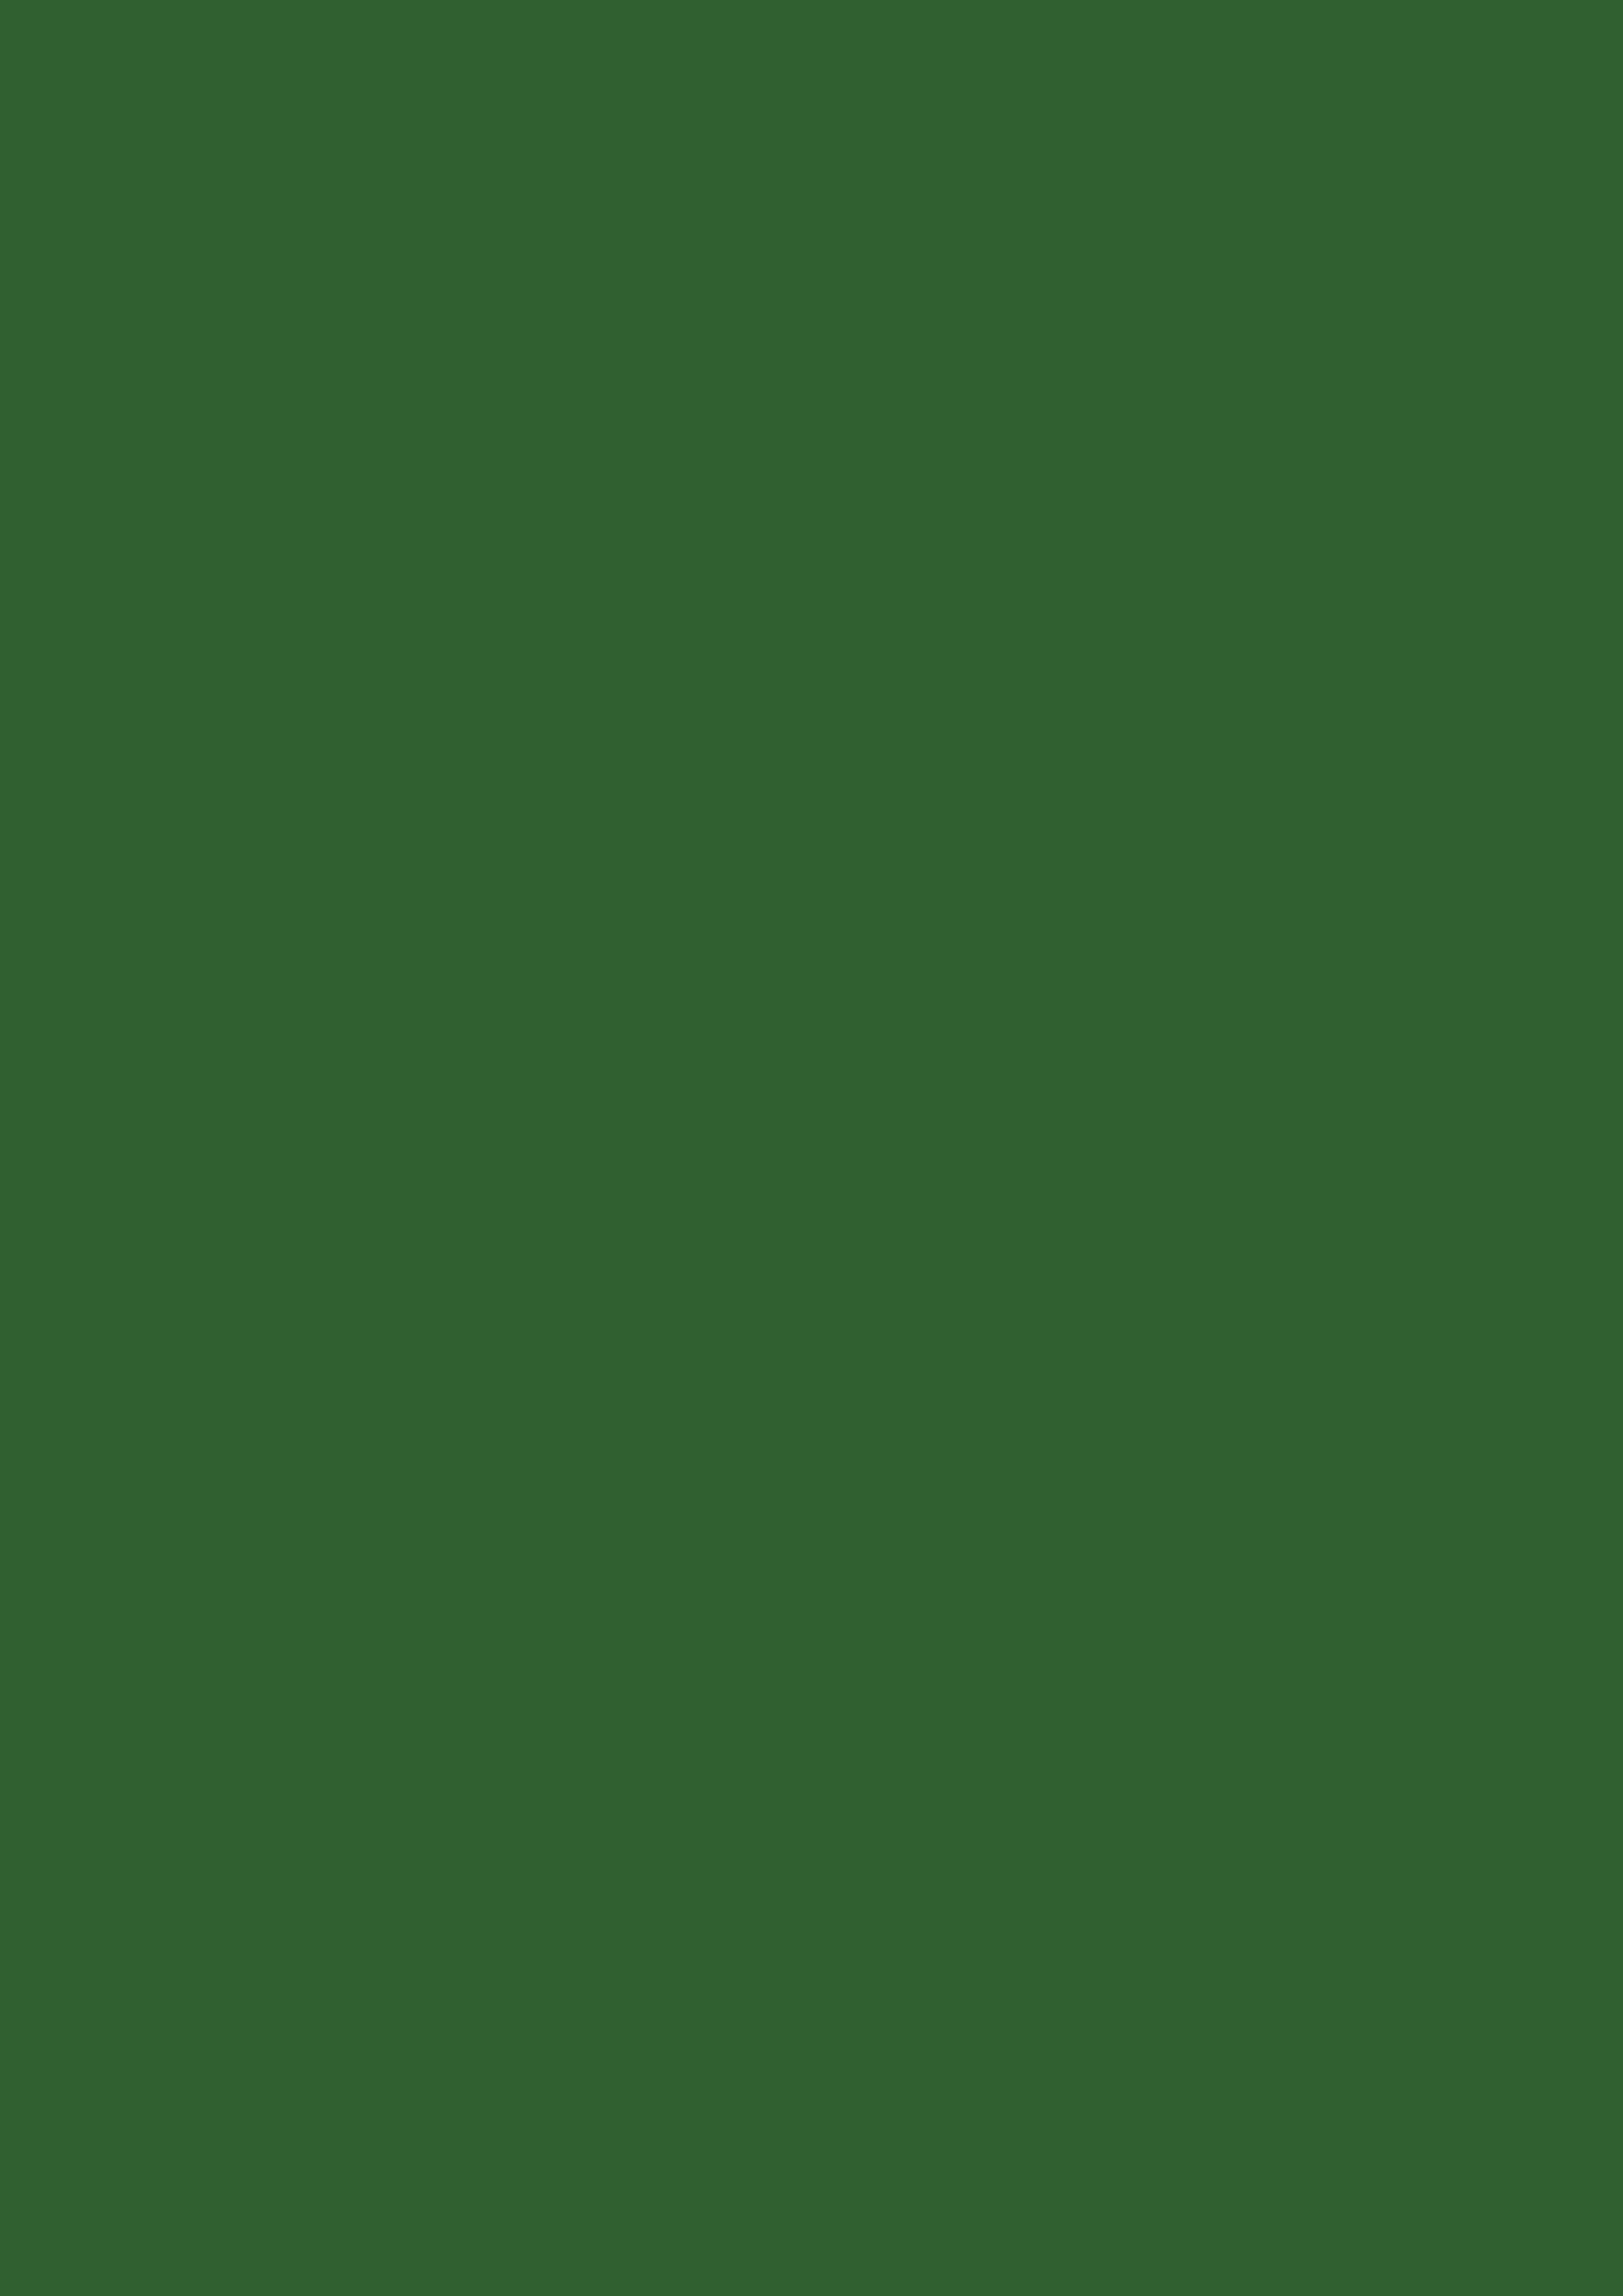 2480x3508 Mughal Green Solid Color Background